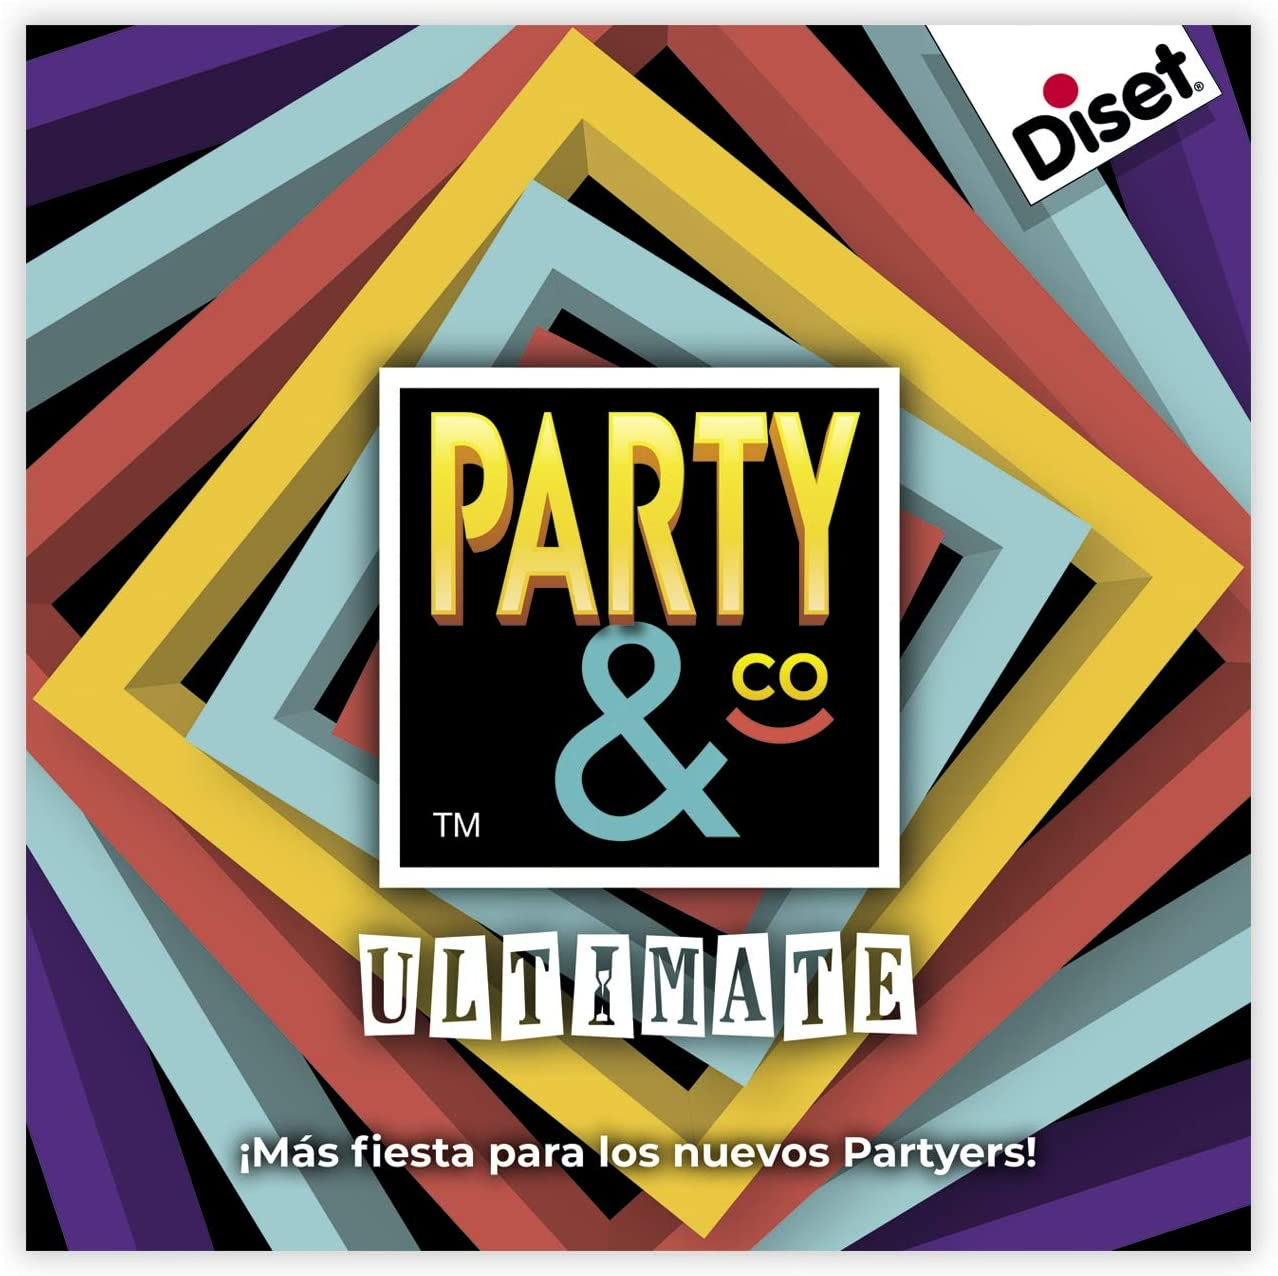 Diset - Party & Co Ultimate